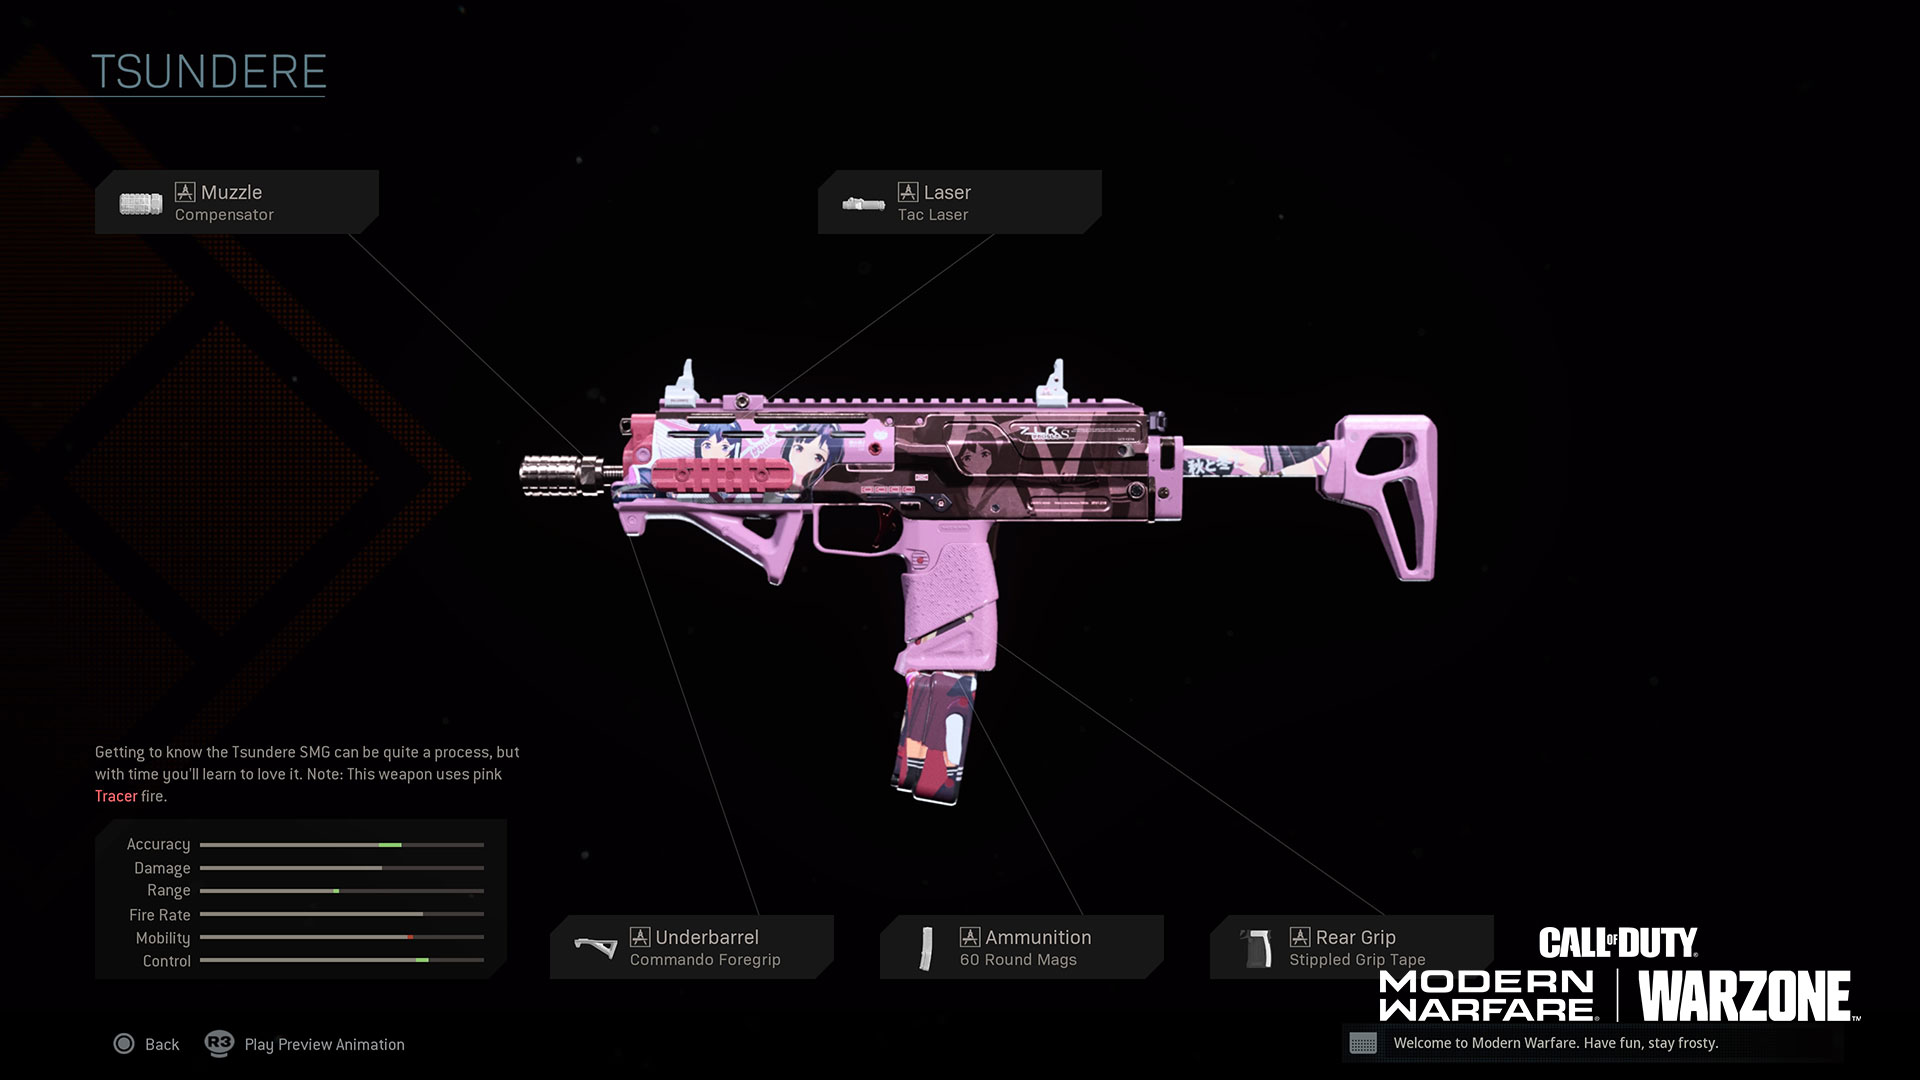 Call Of Duty Warzone Gets Anime Gun Skins In This Week S Update Pcgamesn We'll be posting more modern warfare stuff throughout the day, so make sure to check back regularly. call of duty warzone gets anime gun